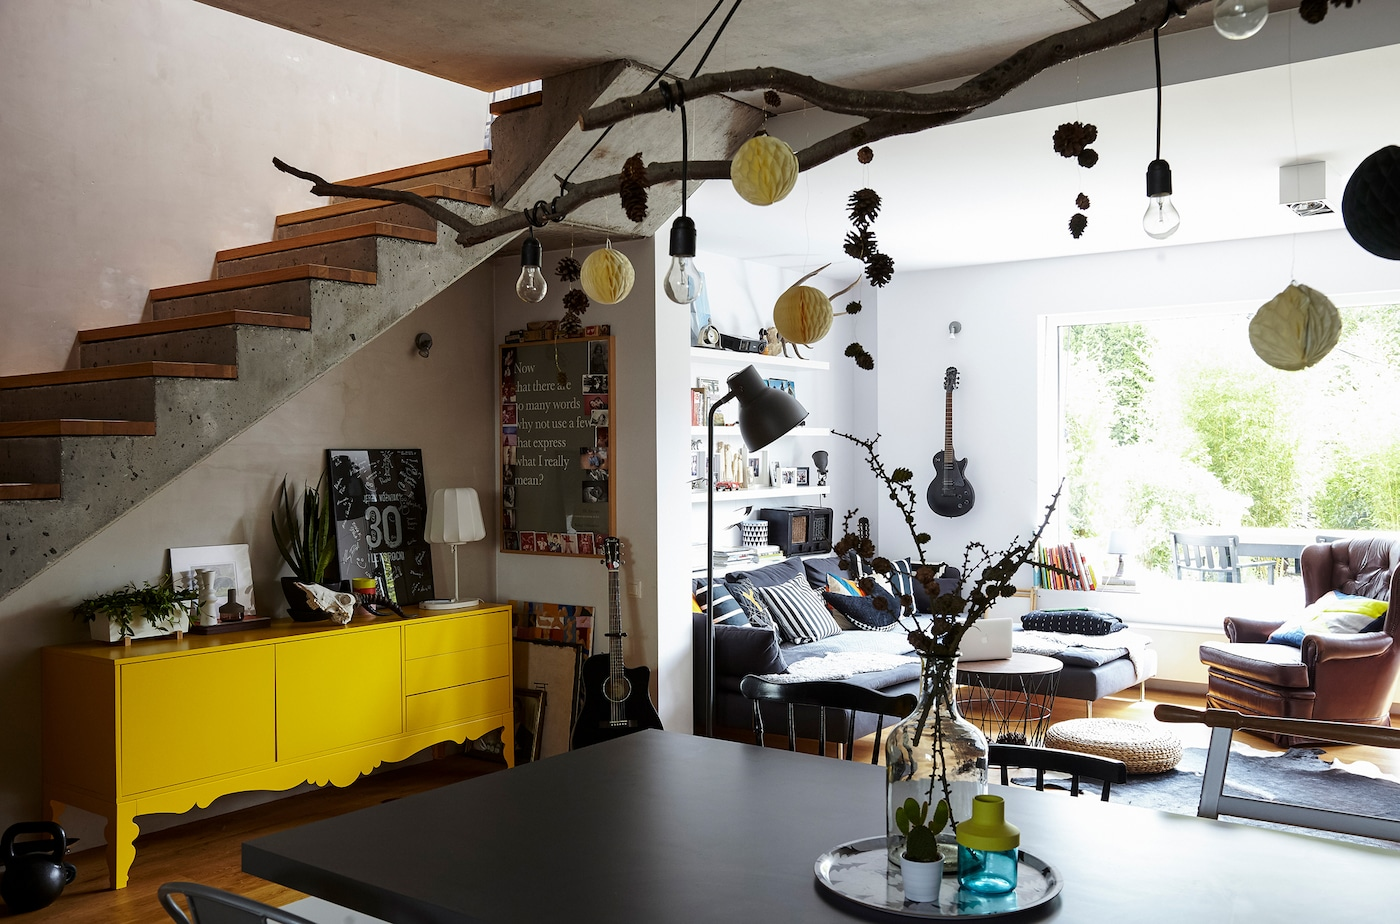 An open living space, leading to an outside terrace, with tree branches and decorations hanging from the ceiling.